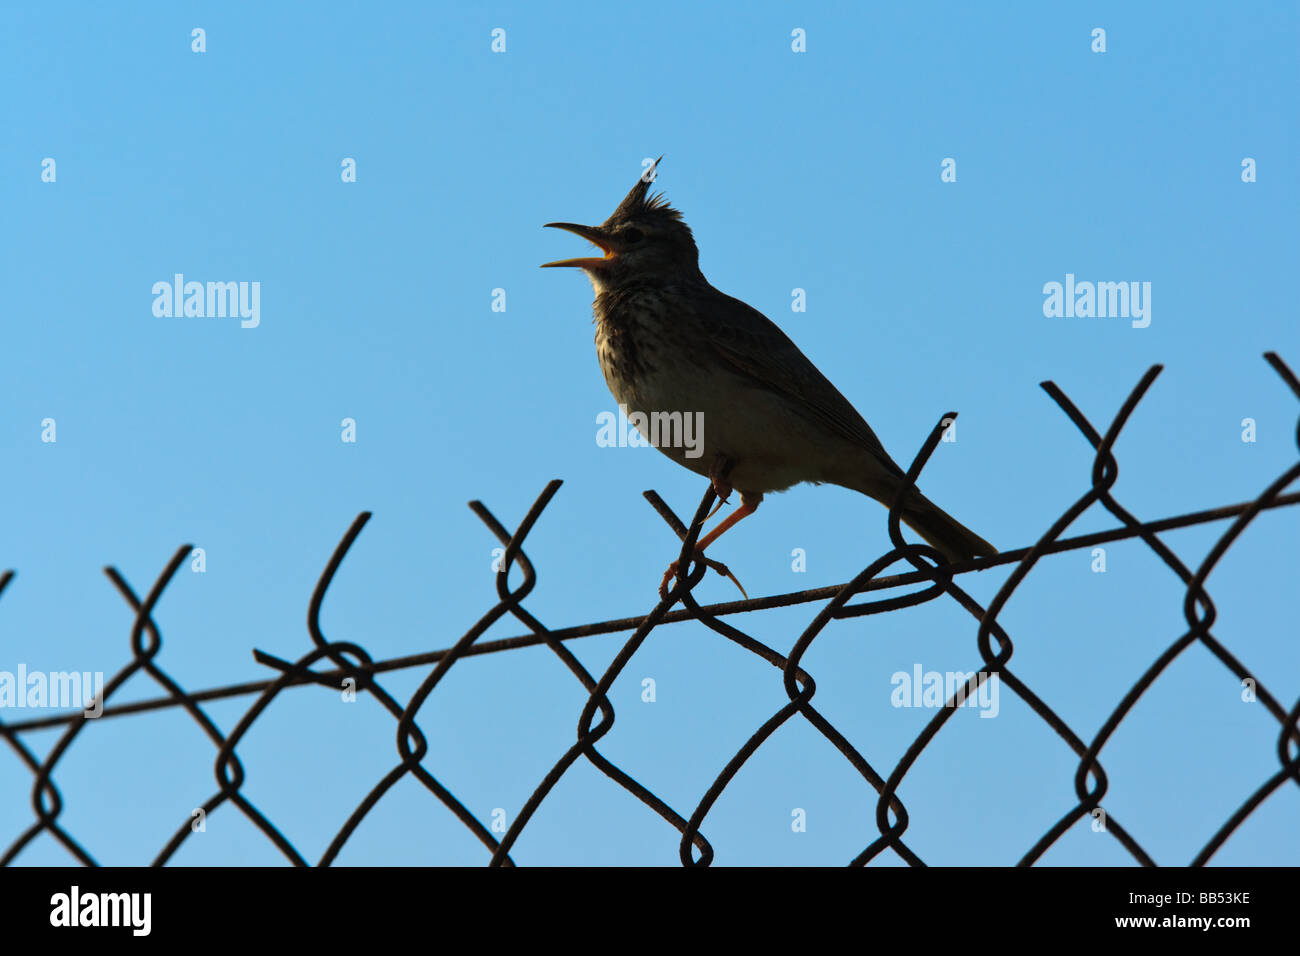 A silhouetted Crested Lark (Galerida cristata) singing on a fence, Lesvos, Greece Stock Photo